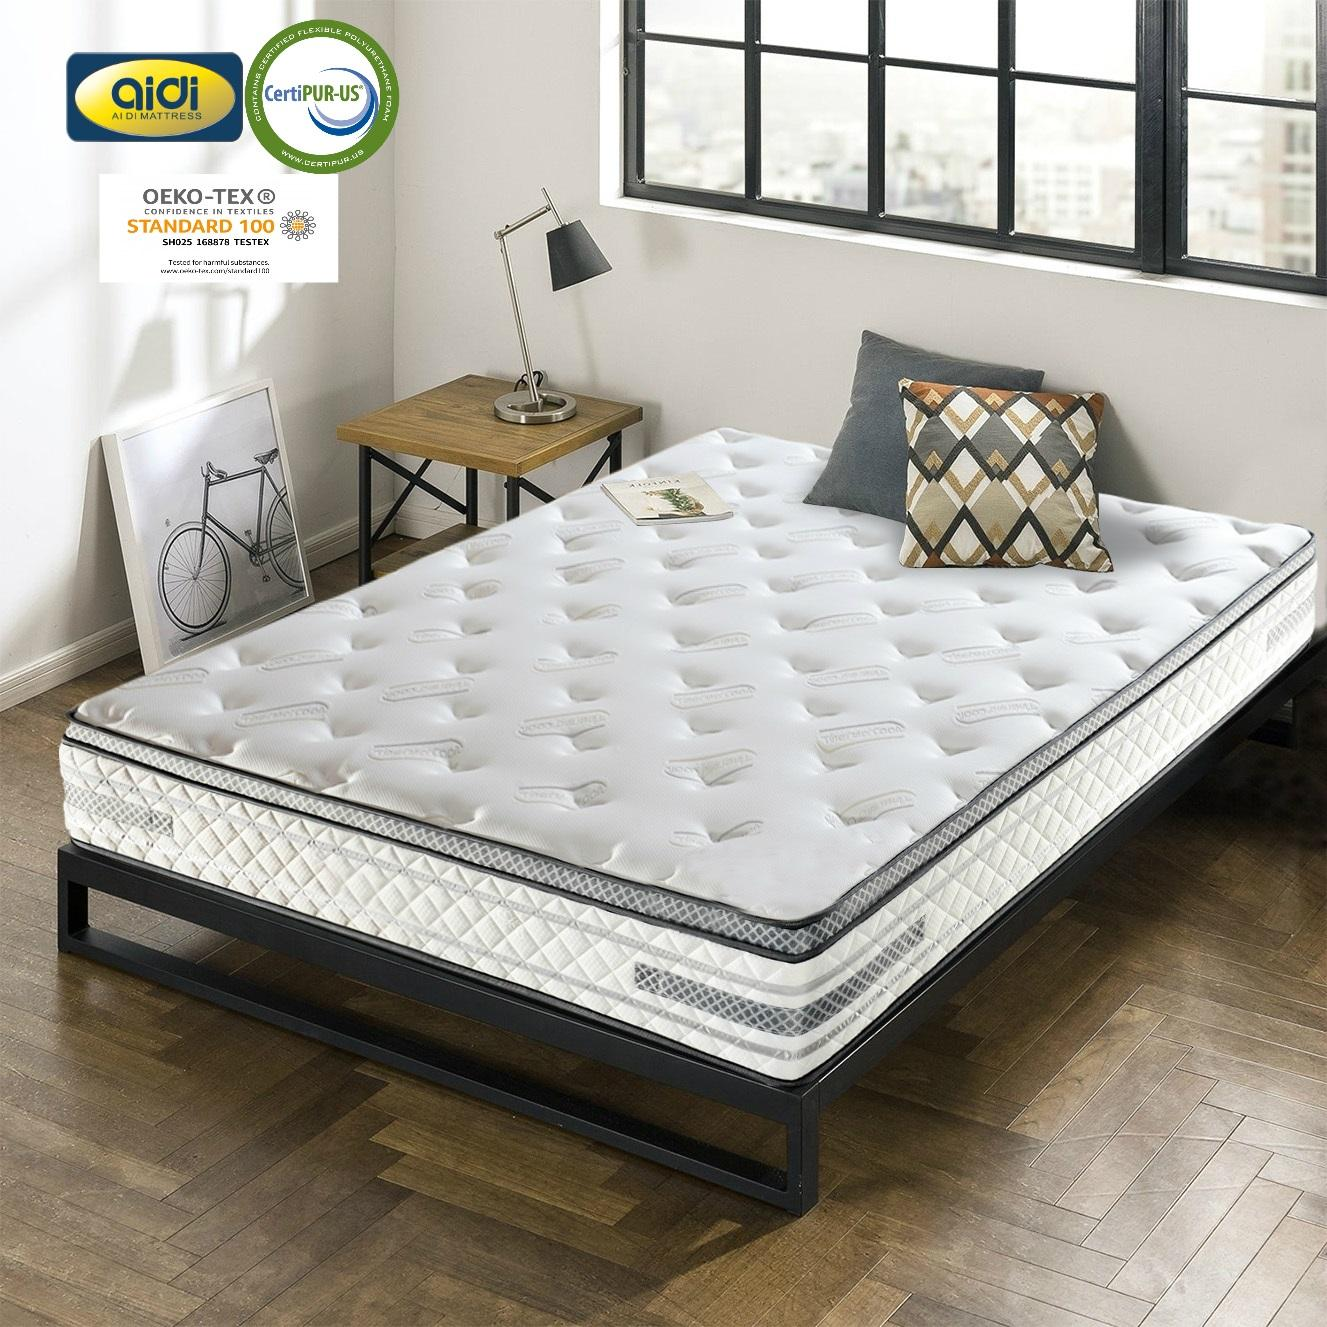 AIDI 7-zone pocket spring materassi rolled mattress bed for sale king size mattress prices bed and kasur pocket coil mattress